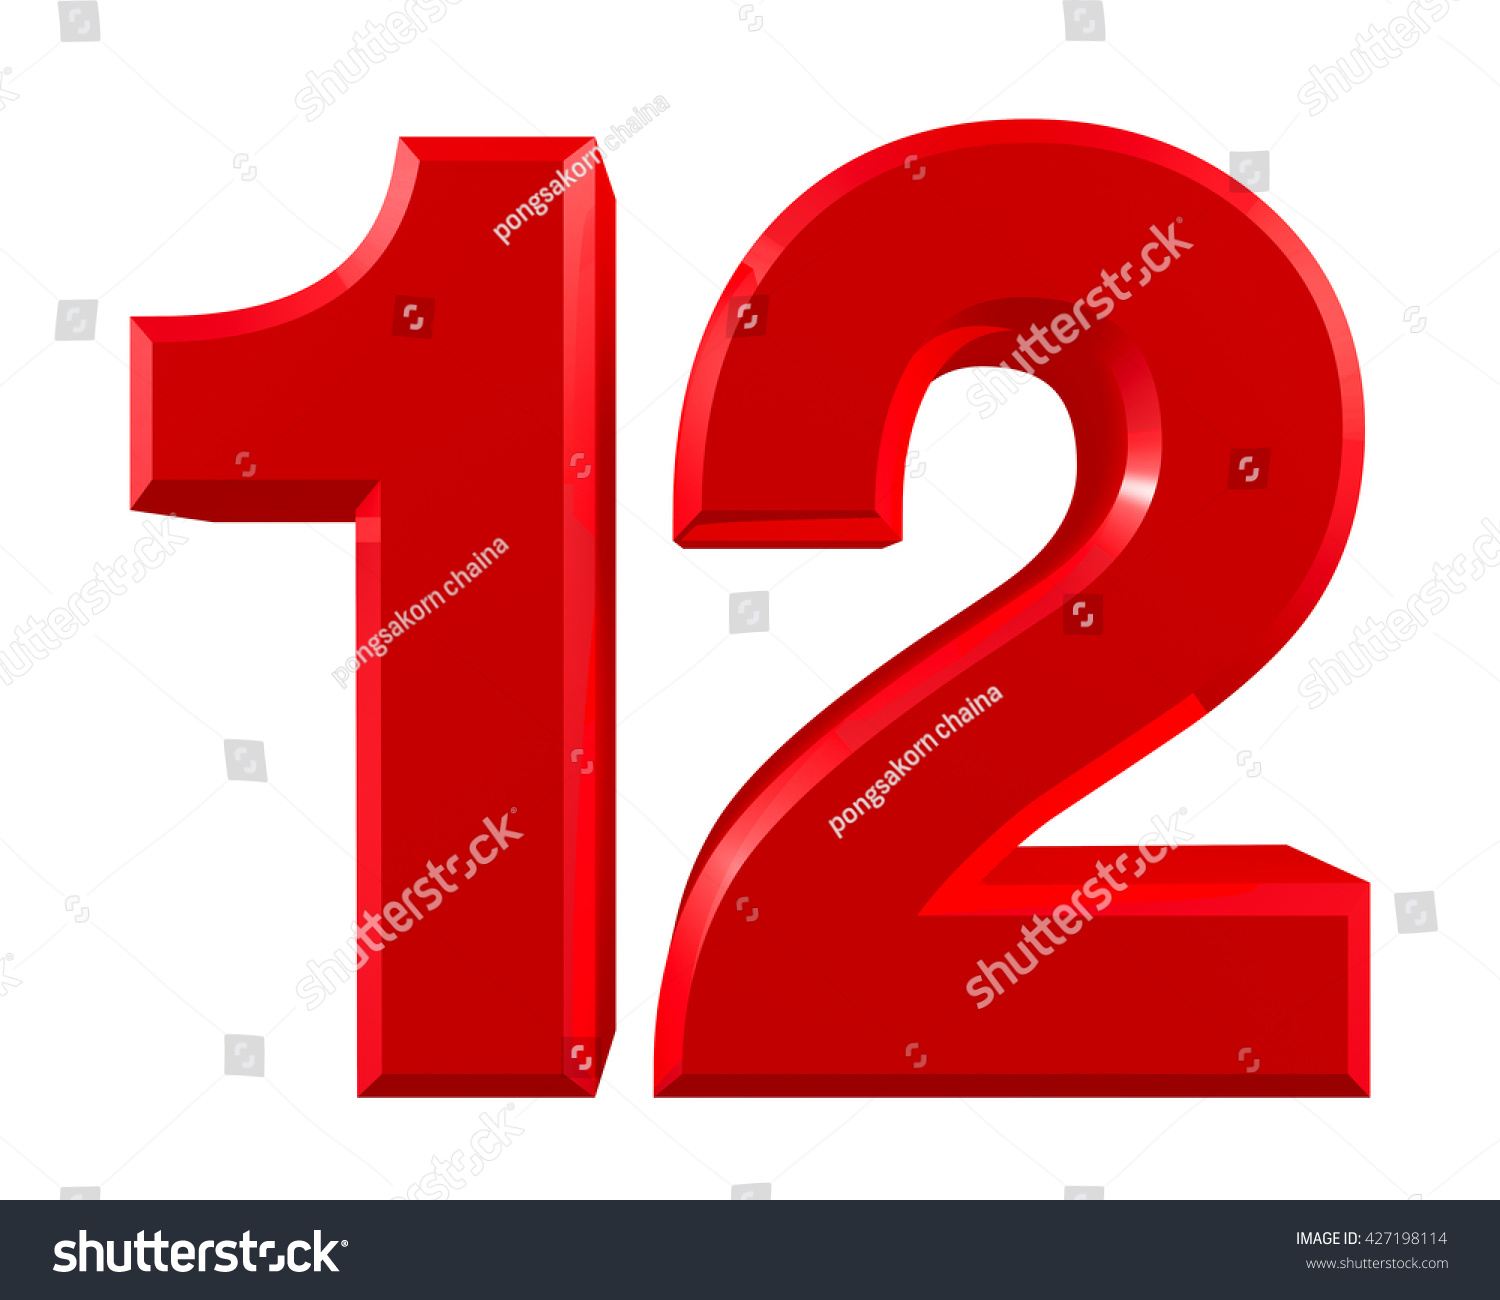 Red numbers 12 on white background illustration 3d rendering